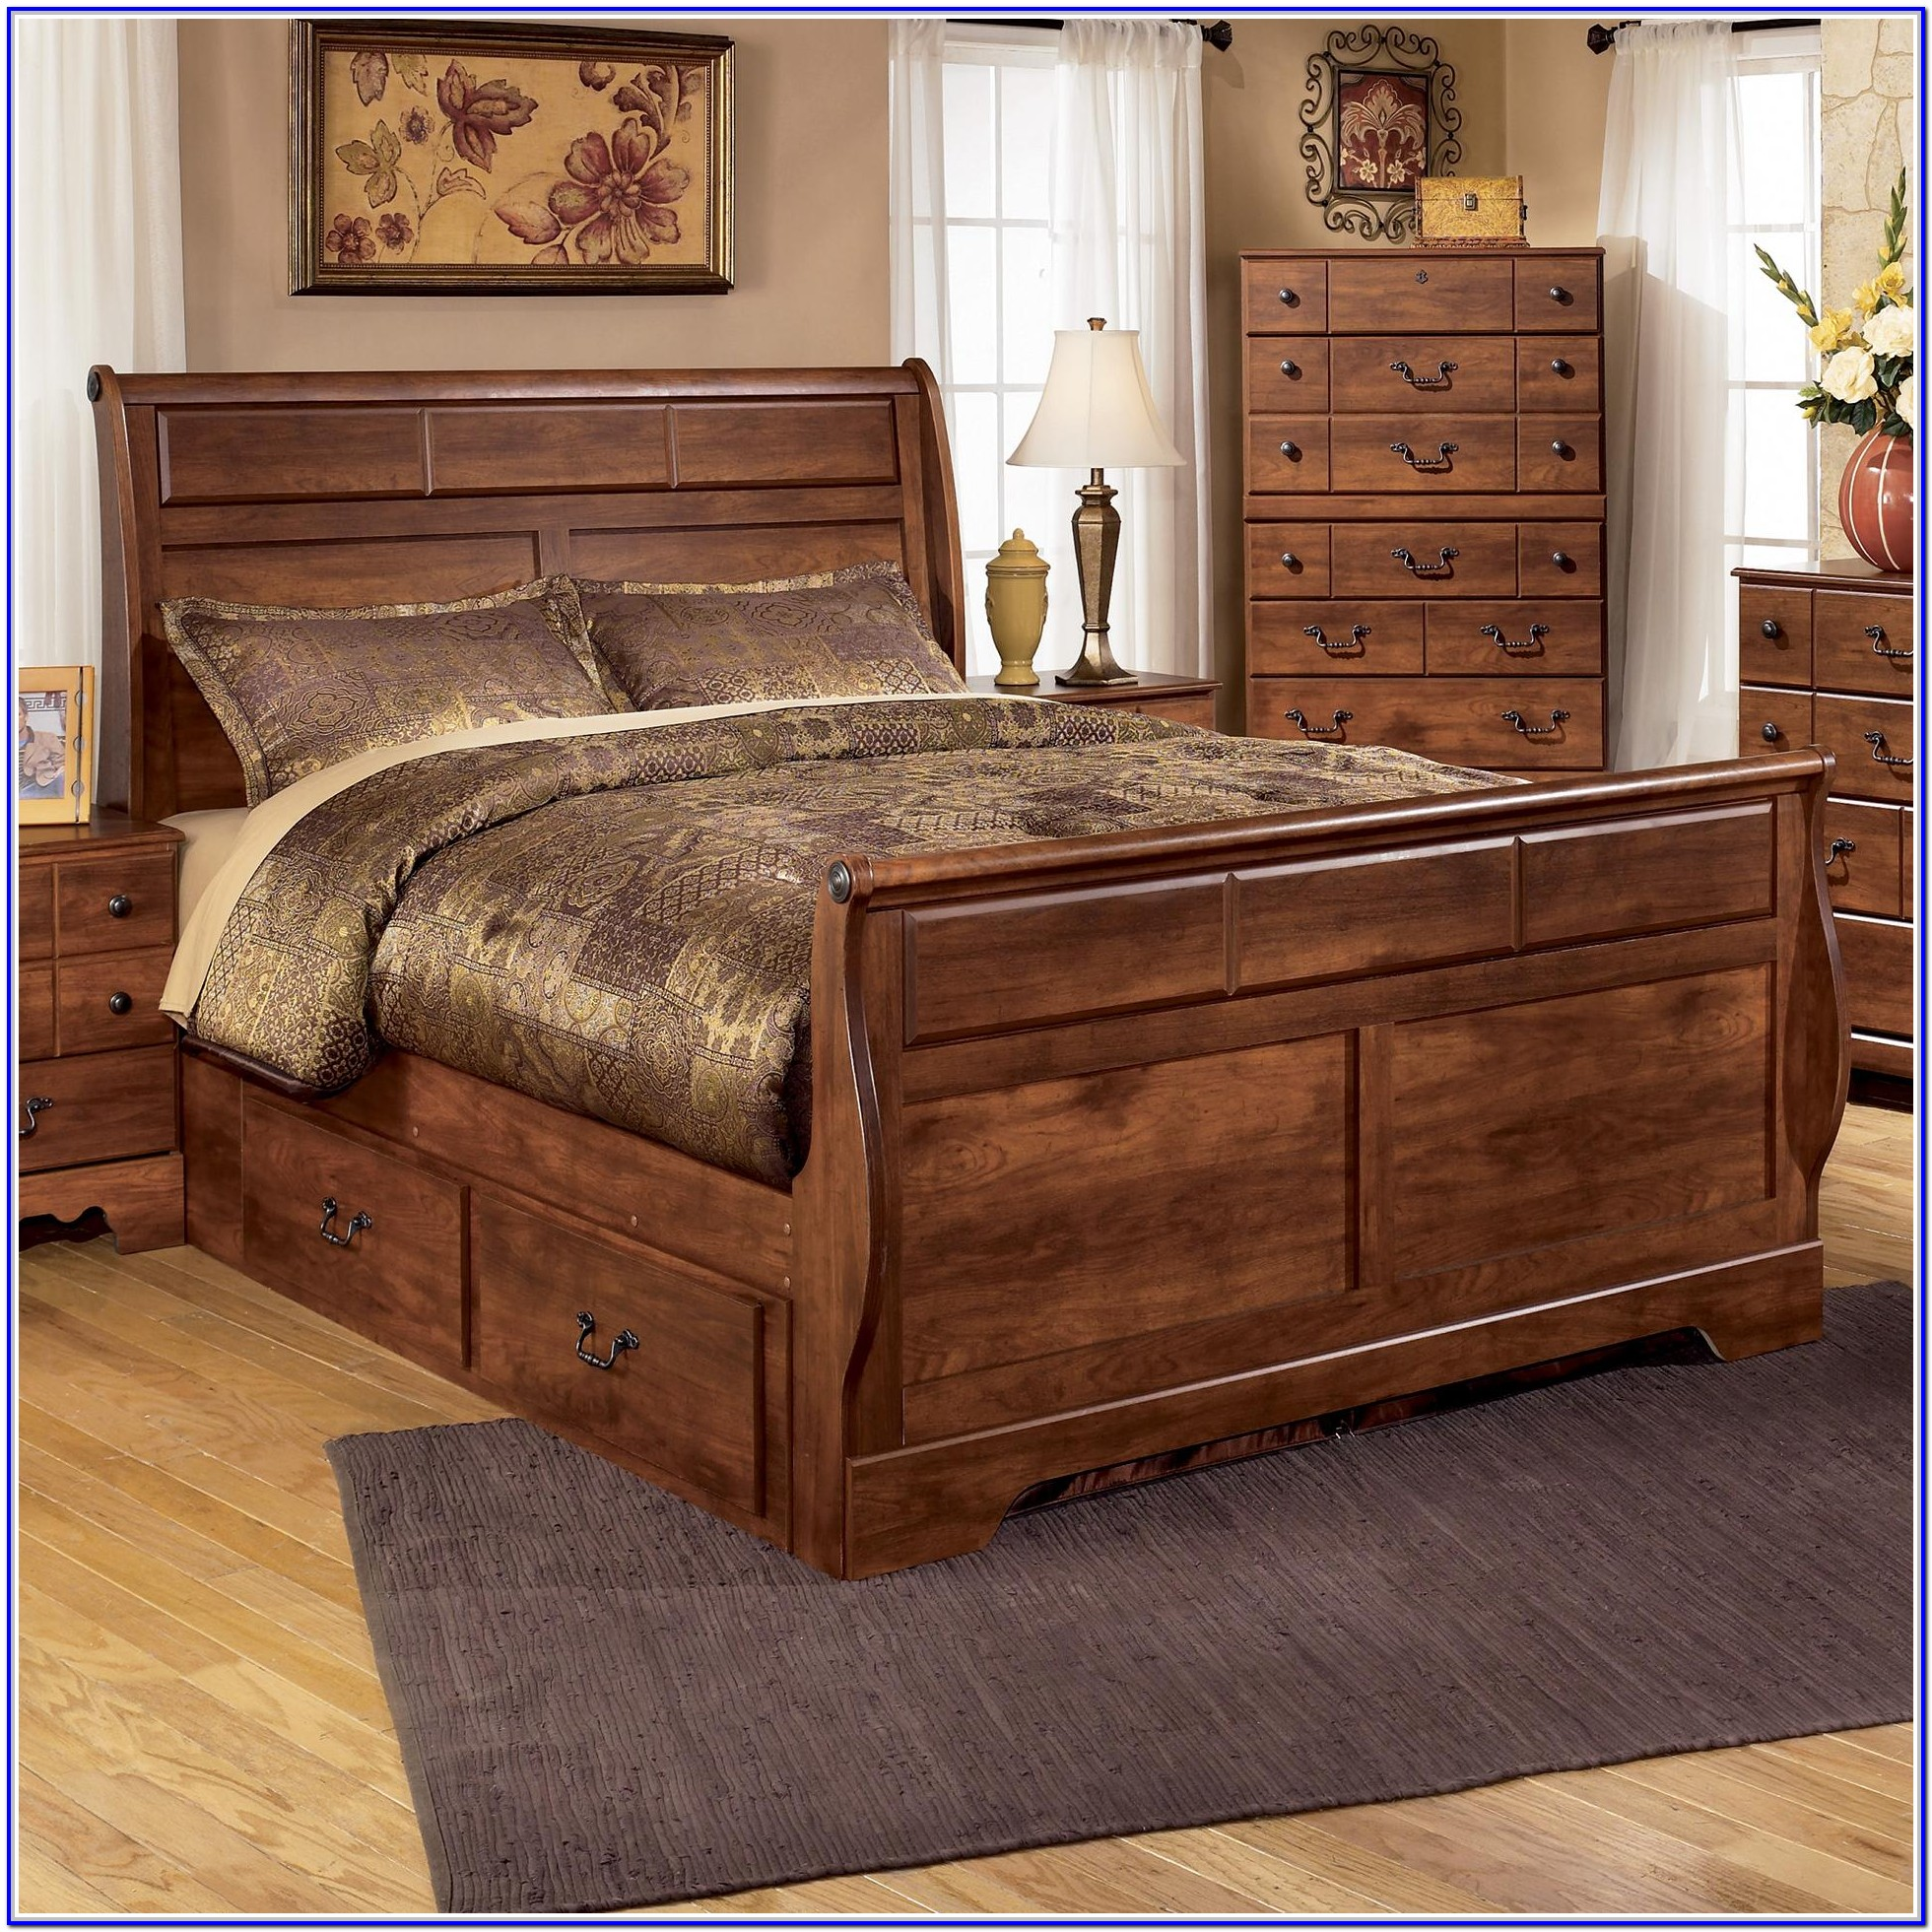 Ashley Furniture King Size Bed With Storage